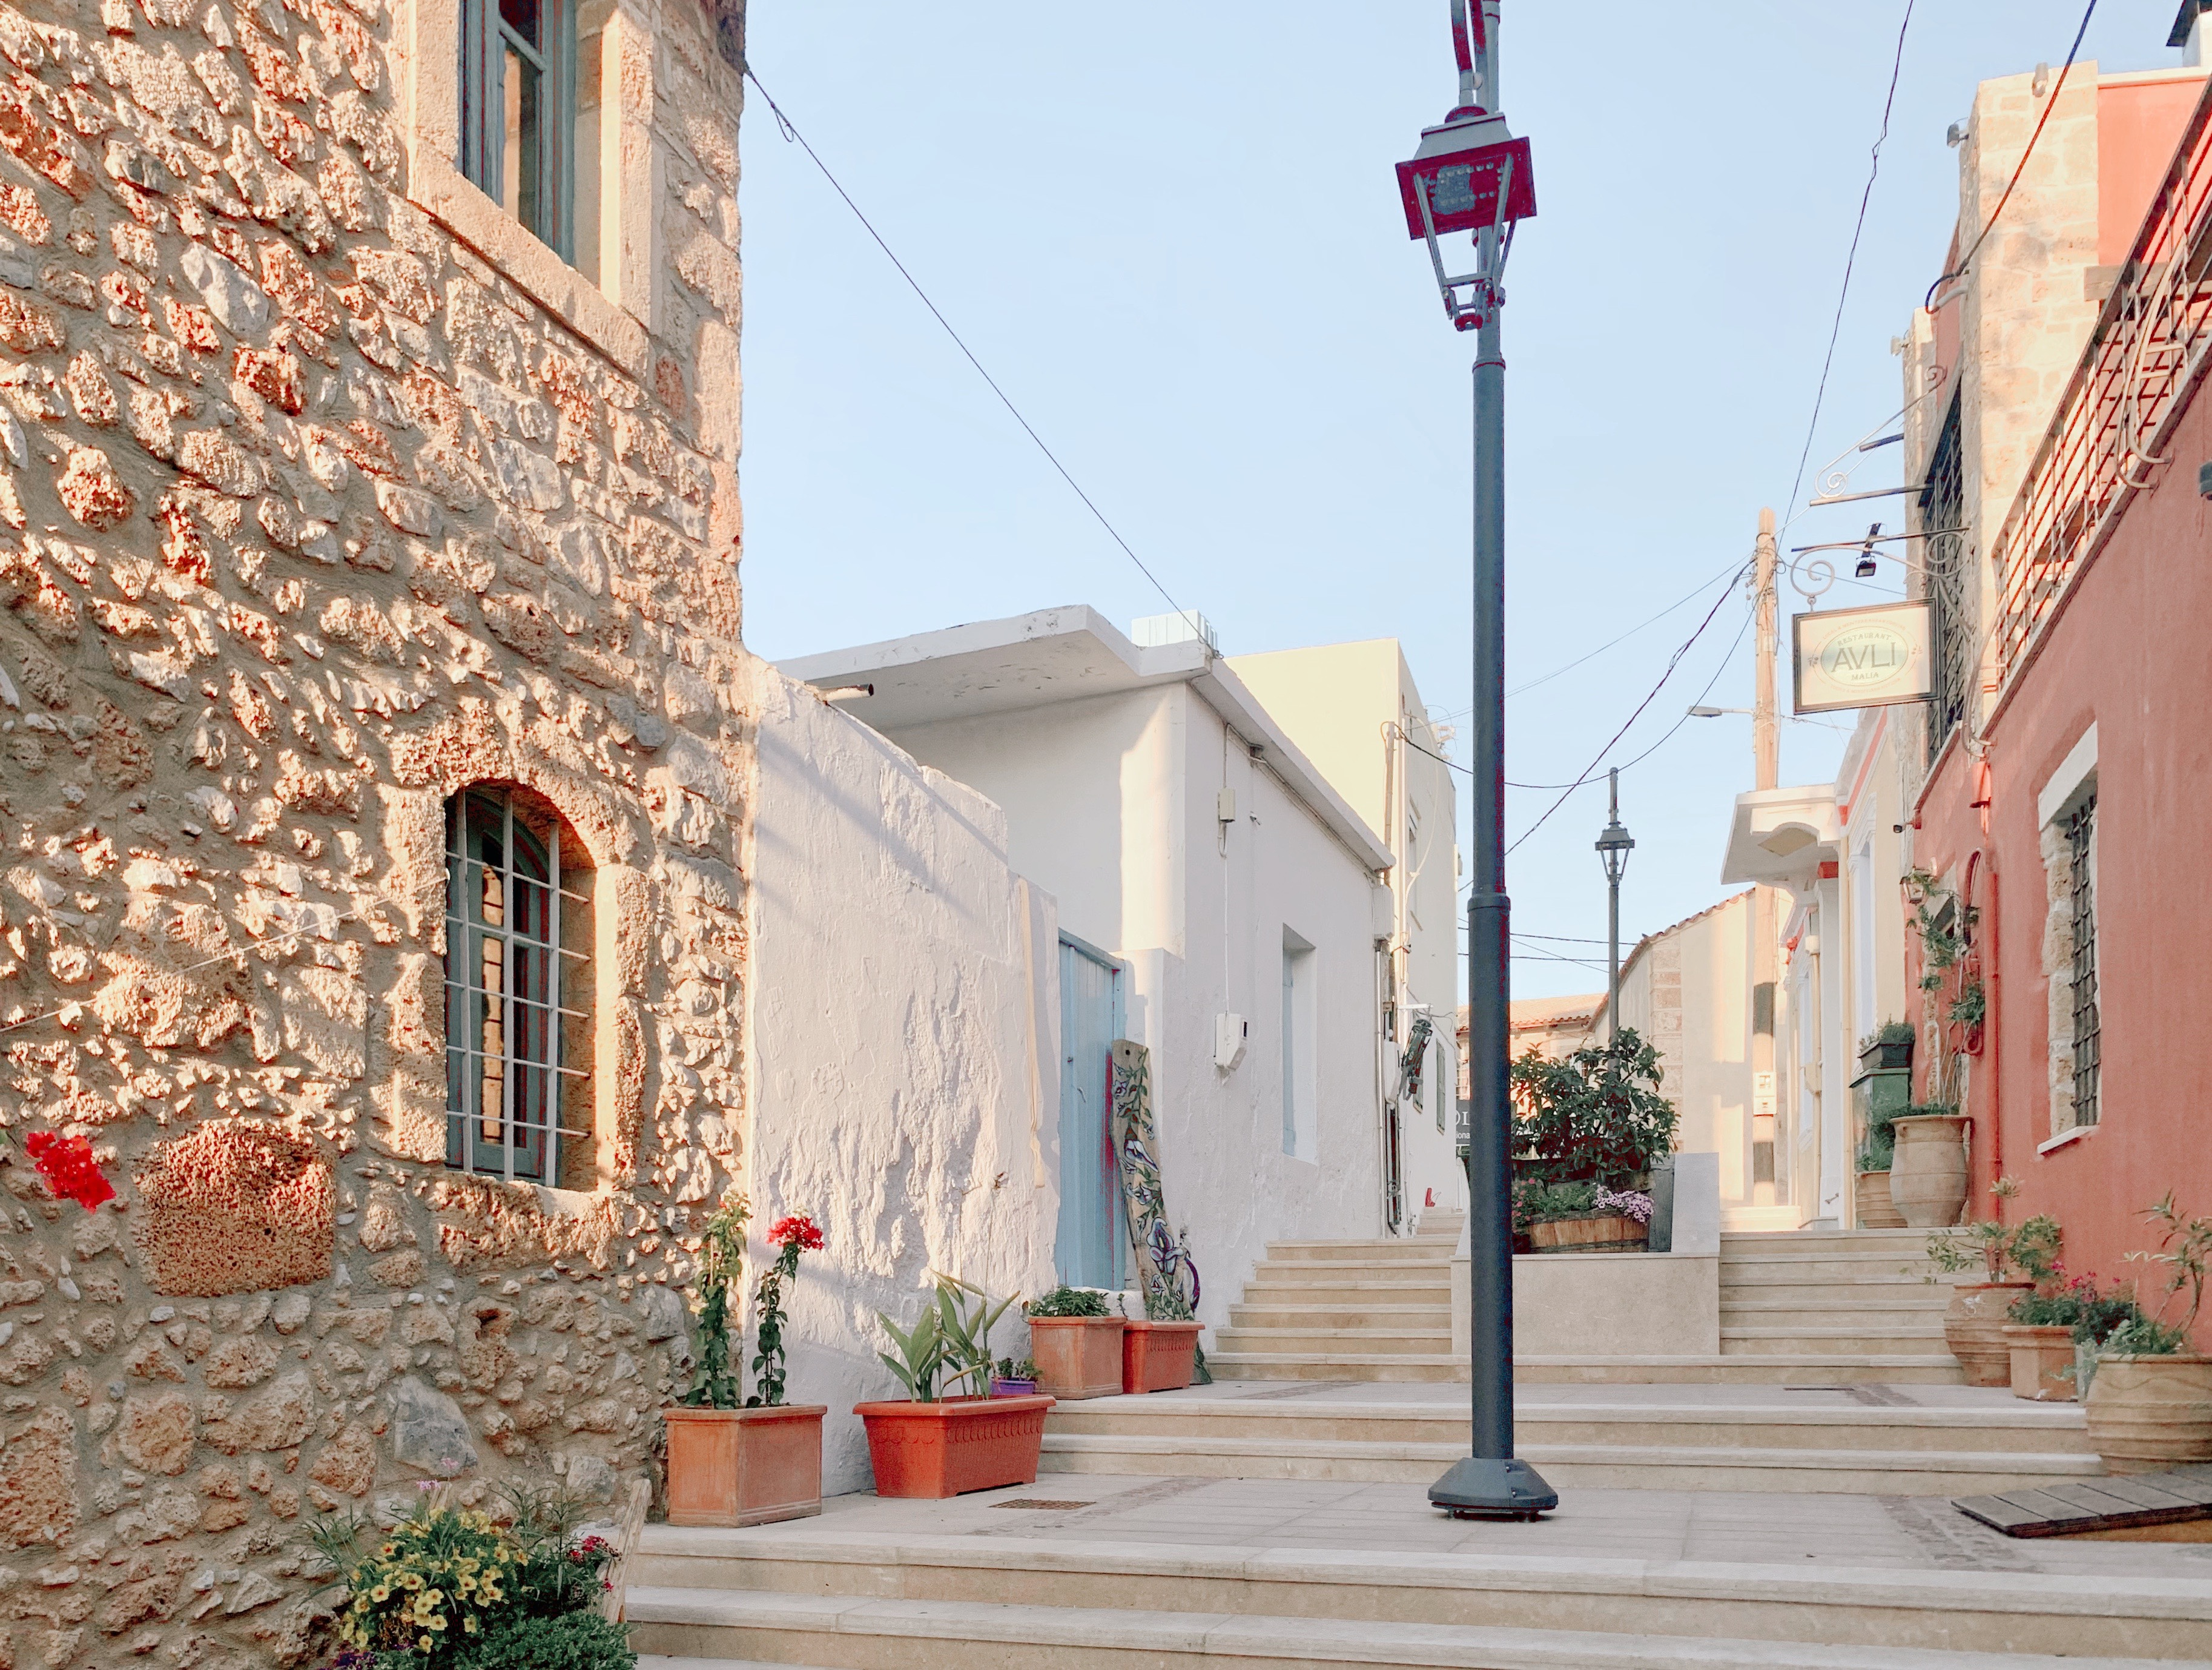 acs 0145 1 - Crete, Greece